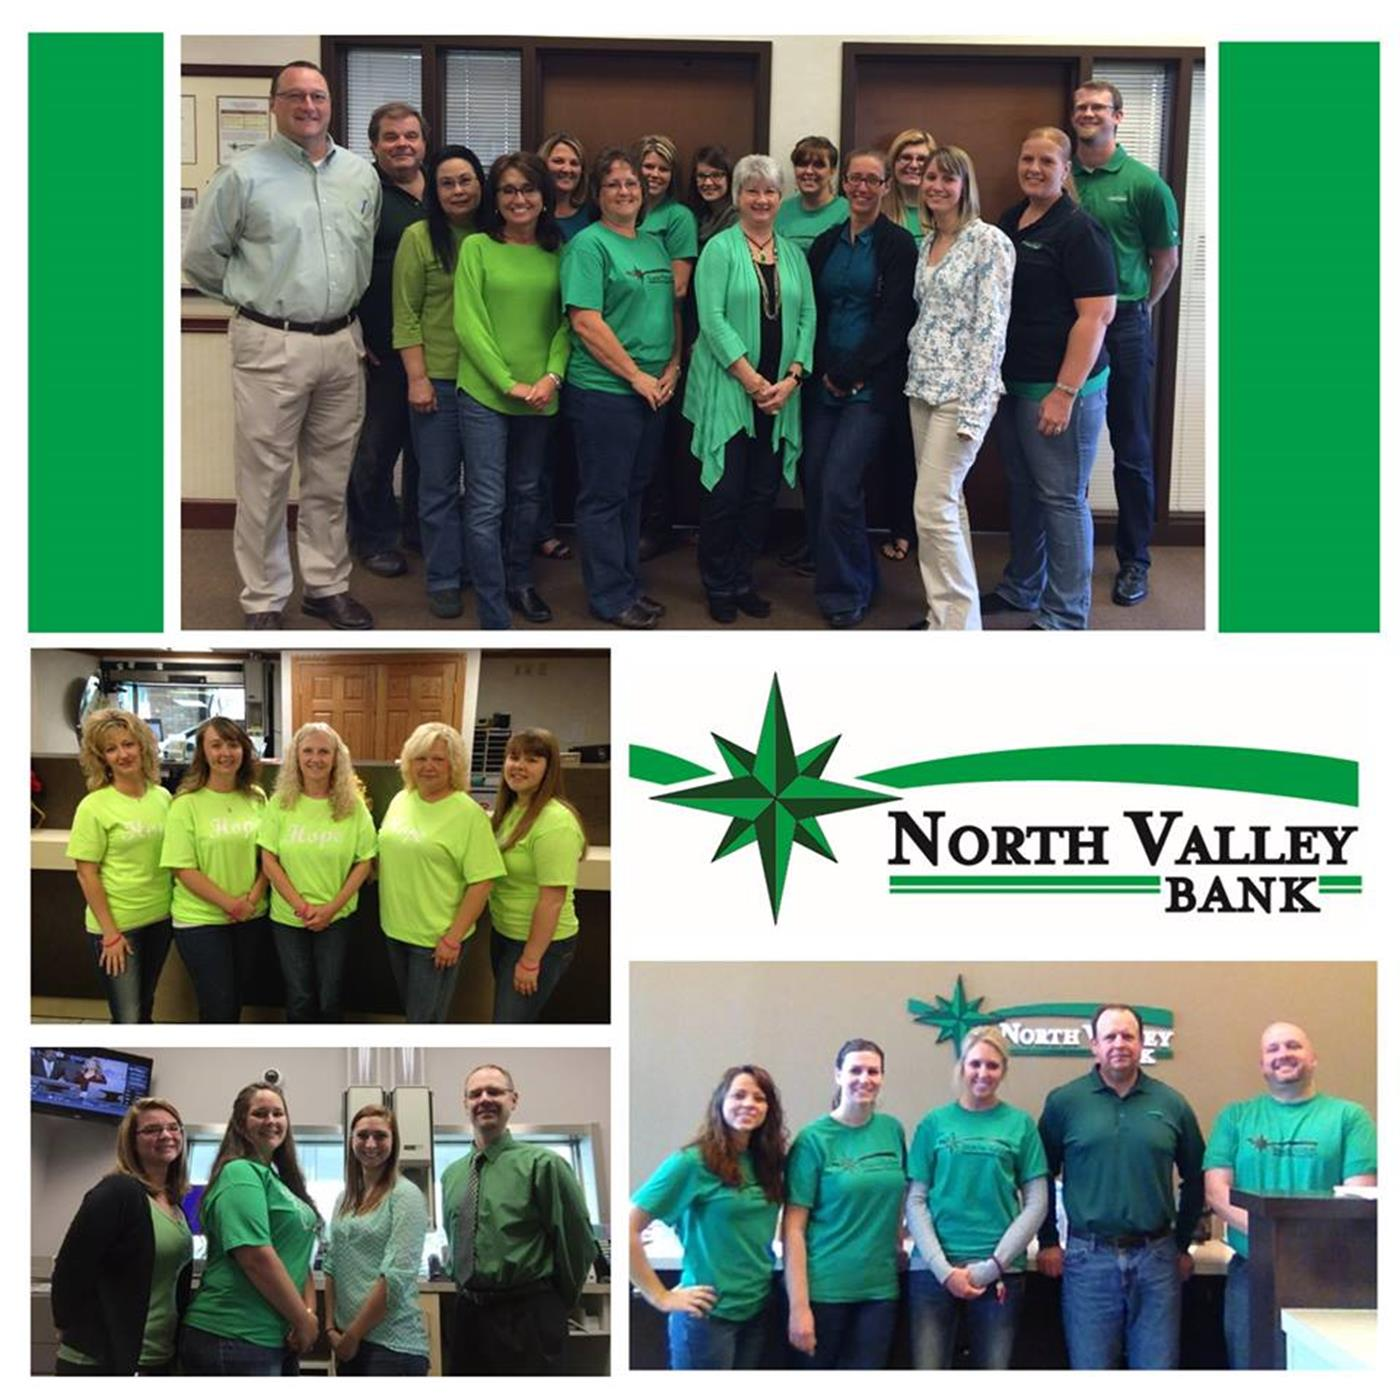 North Valley Bank Green For Hope